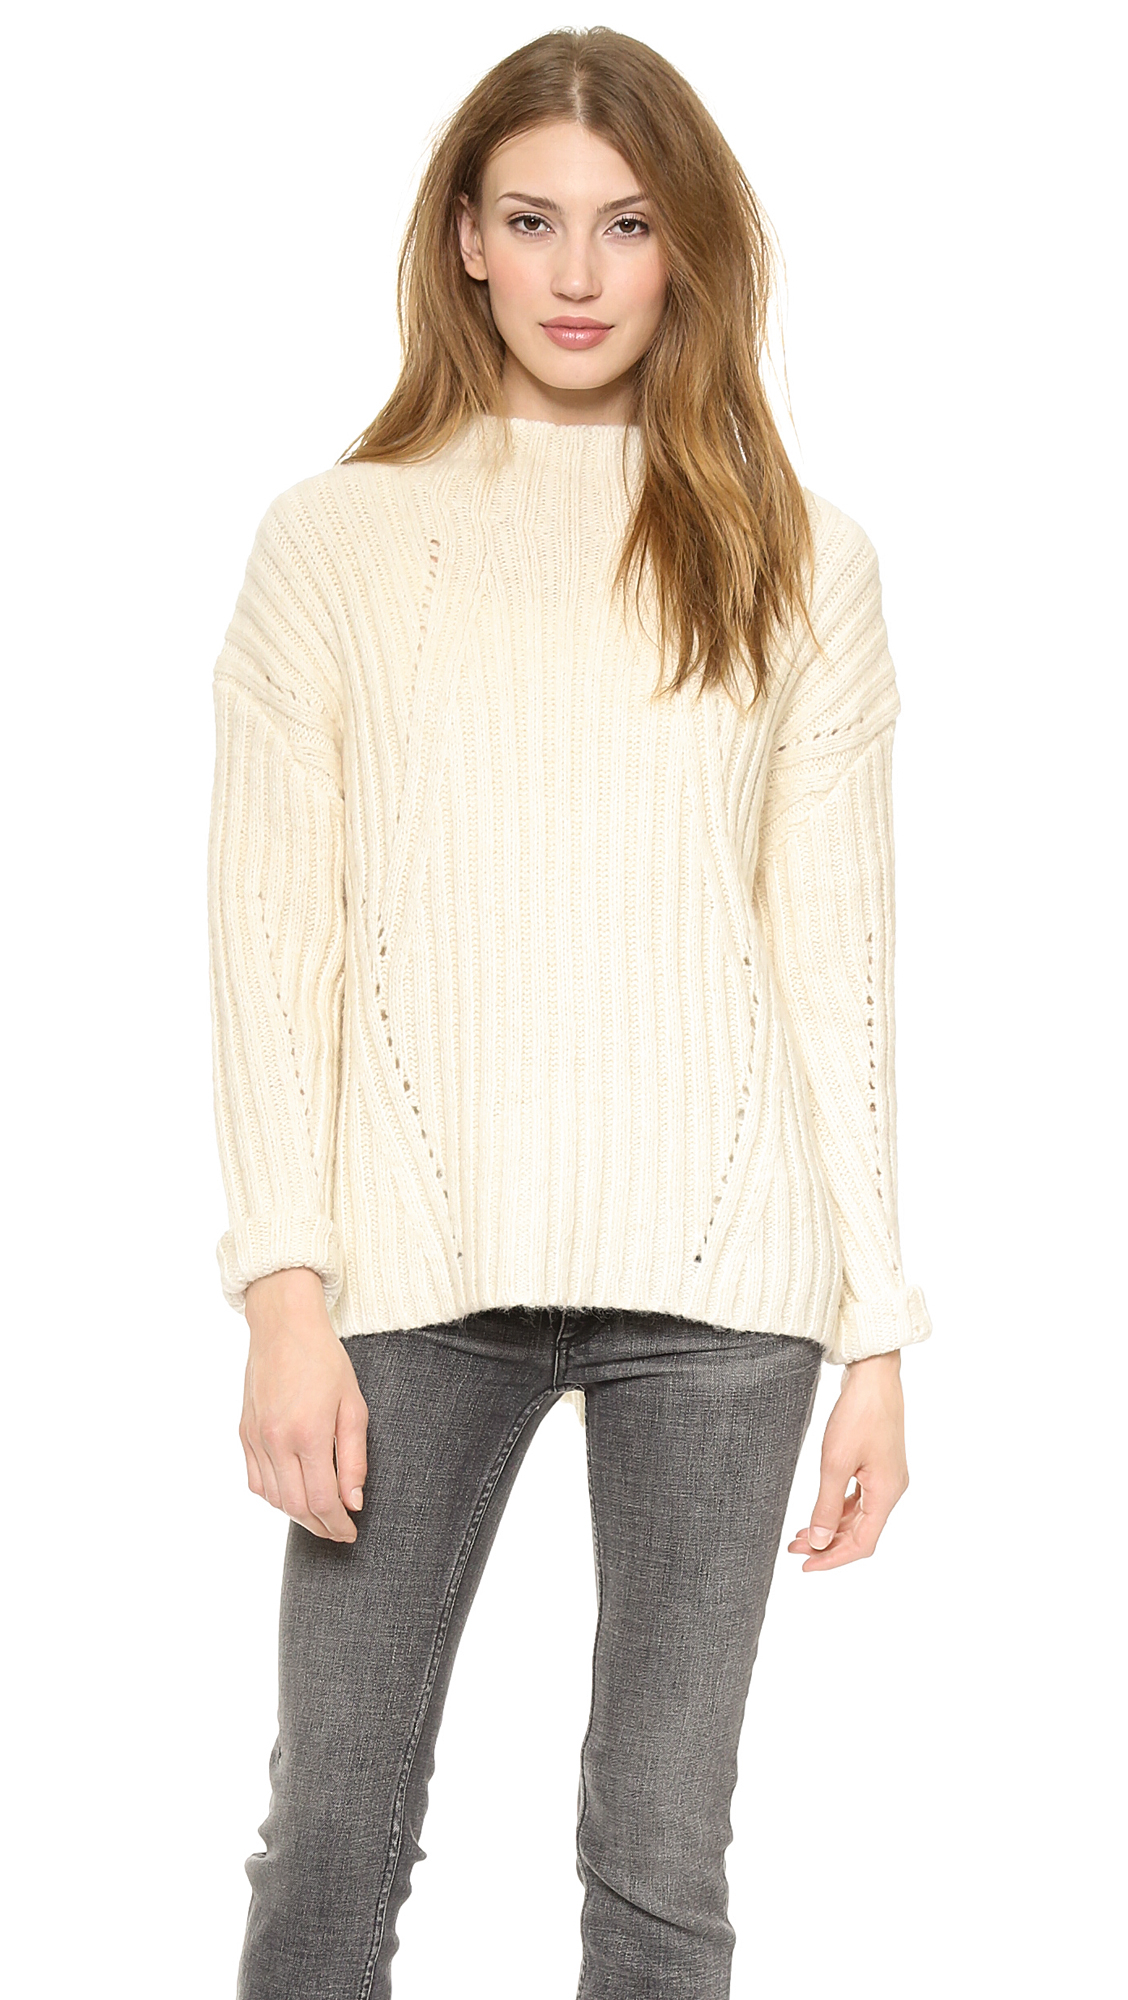 Nili lotan 18-8 Oversized Mock Neck Ribbed Sweater - Cream in ...